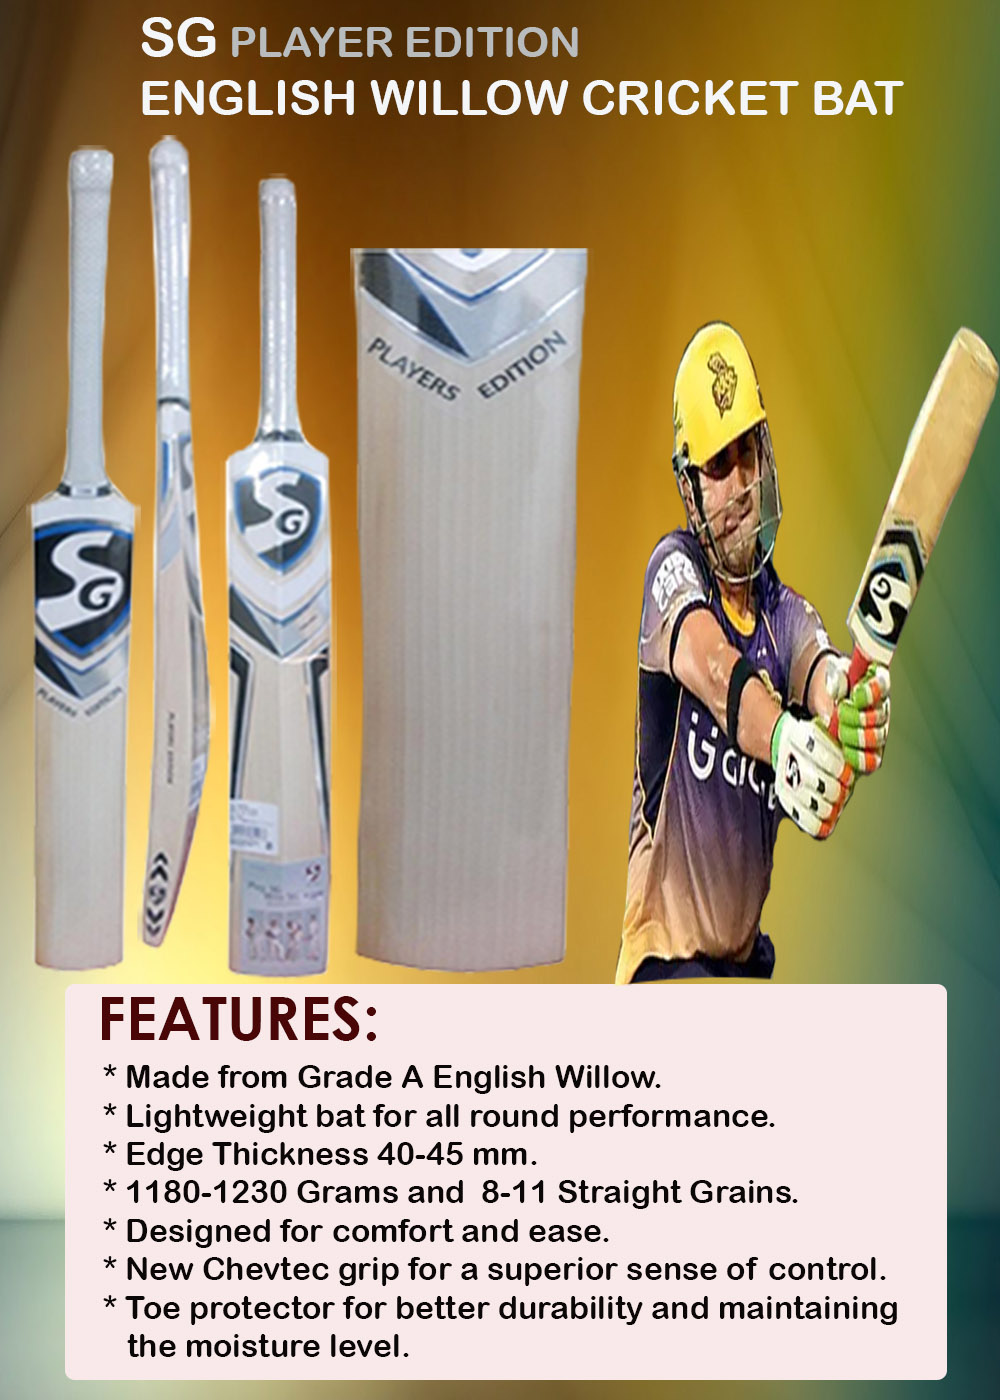 SG Players Edition Eng lish Willow Cricket Bat_6